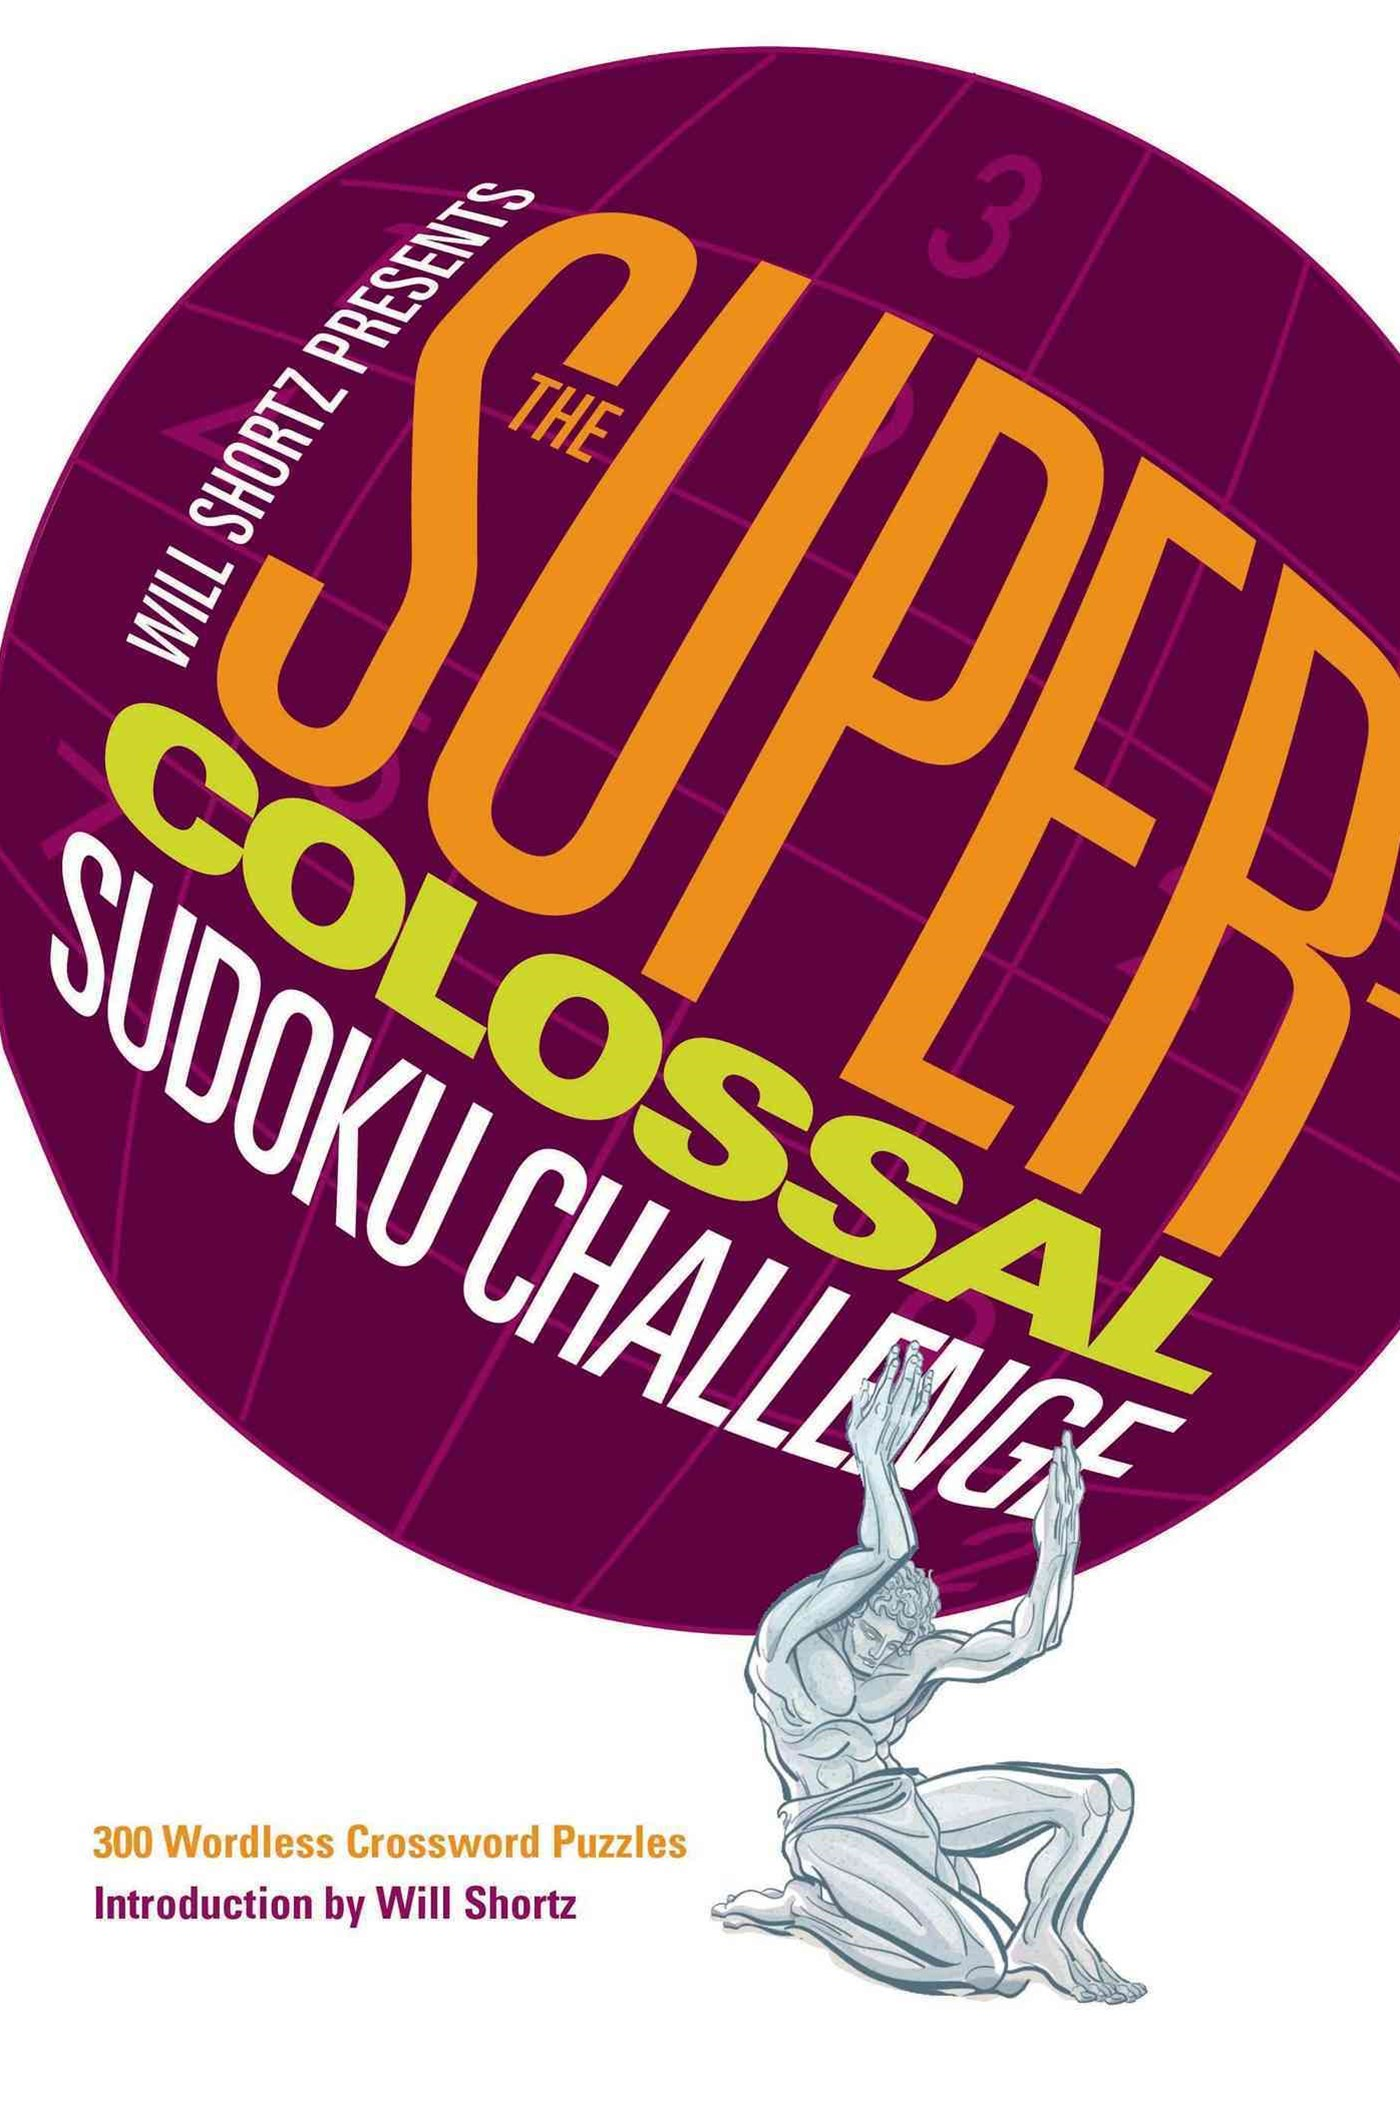 The Super-Colossal Sudoku Challenge